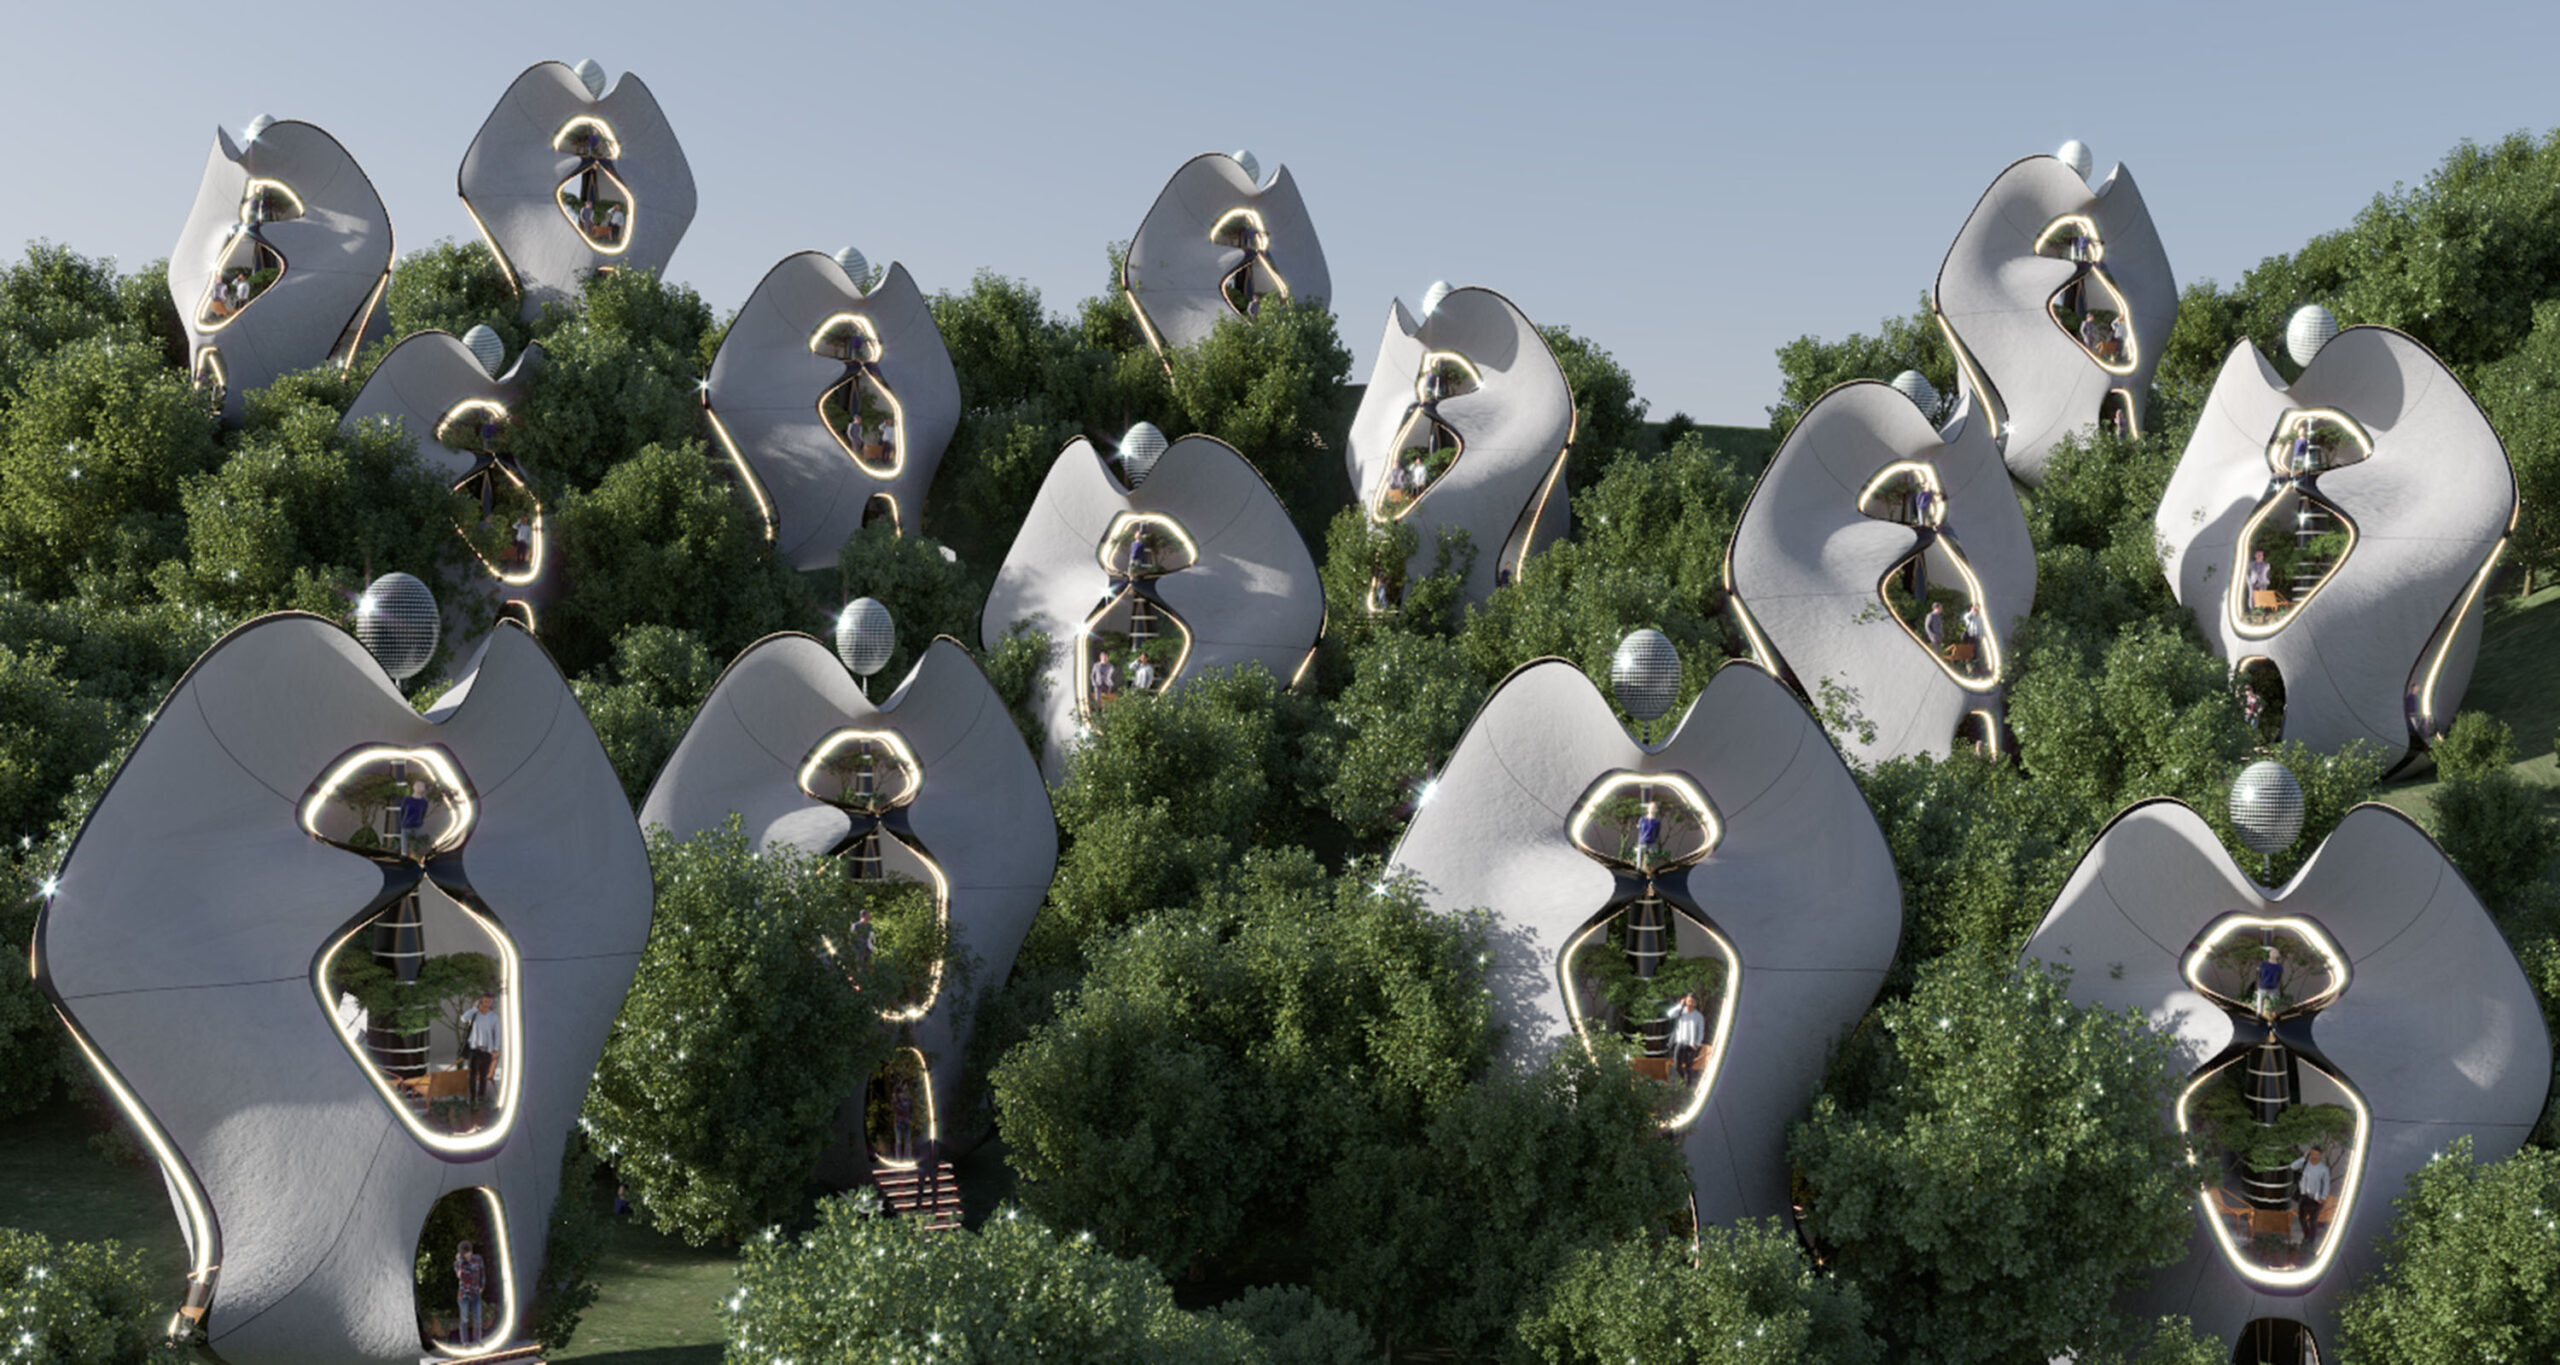 Render of what the Madre Natura development could look like once built. Image via MASK Architects.